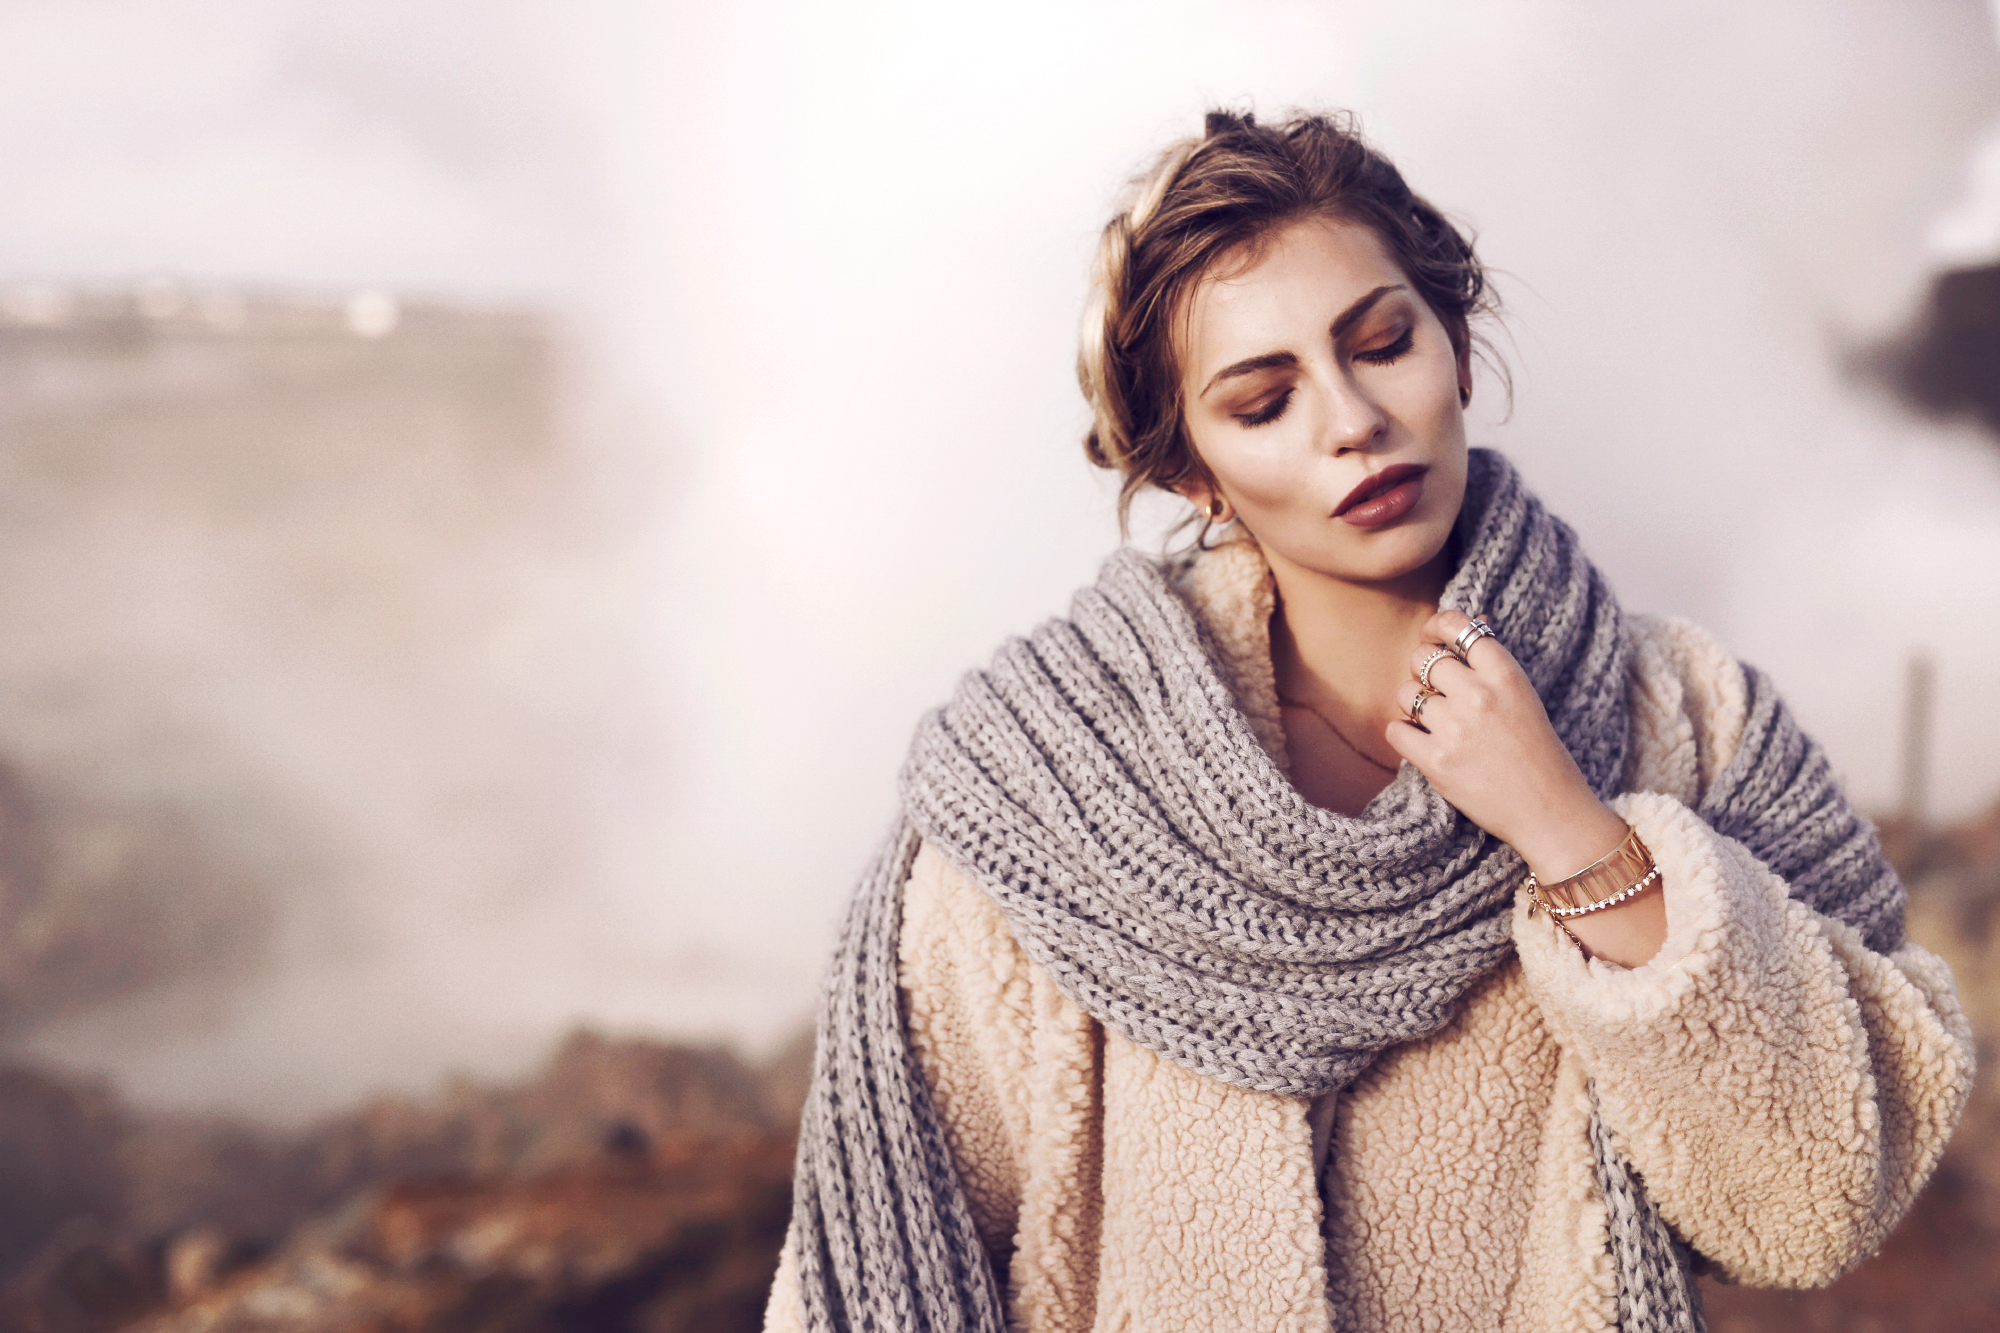 Iceland Fashion Editorial Shooting | outfit style: winter, long shearling coat, casual, comfy, light, warm, cashmere